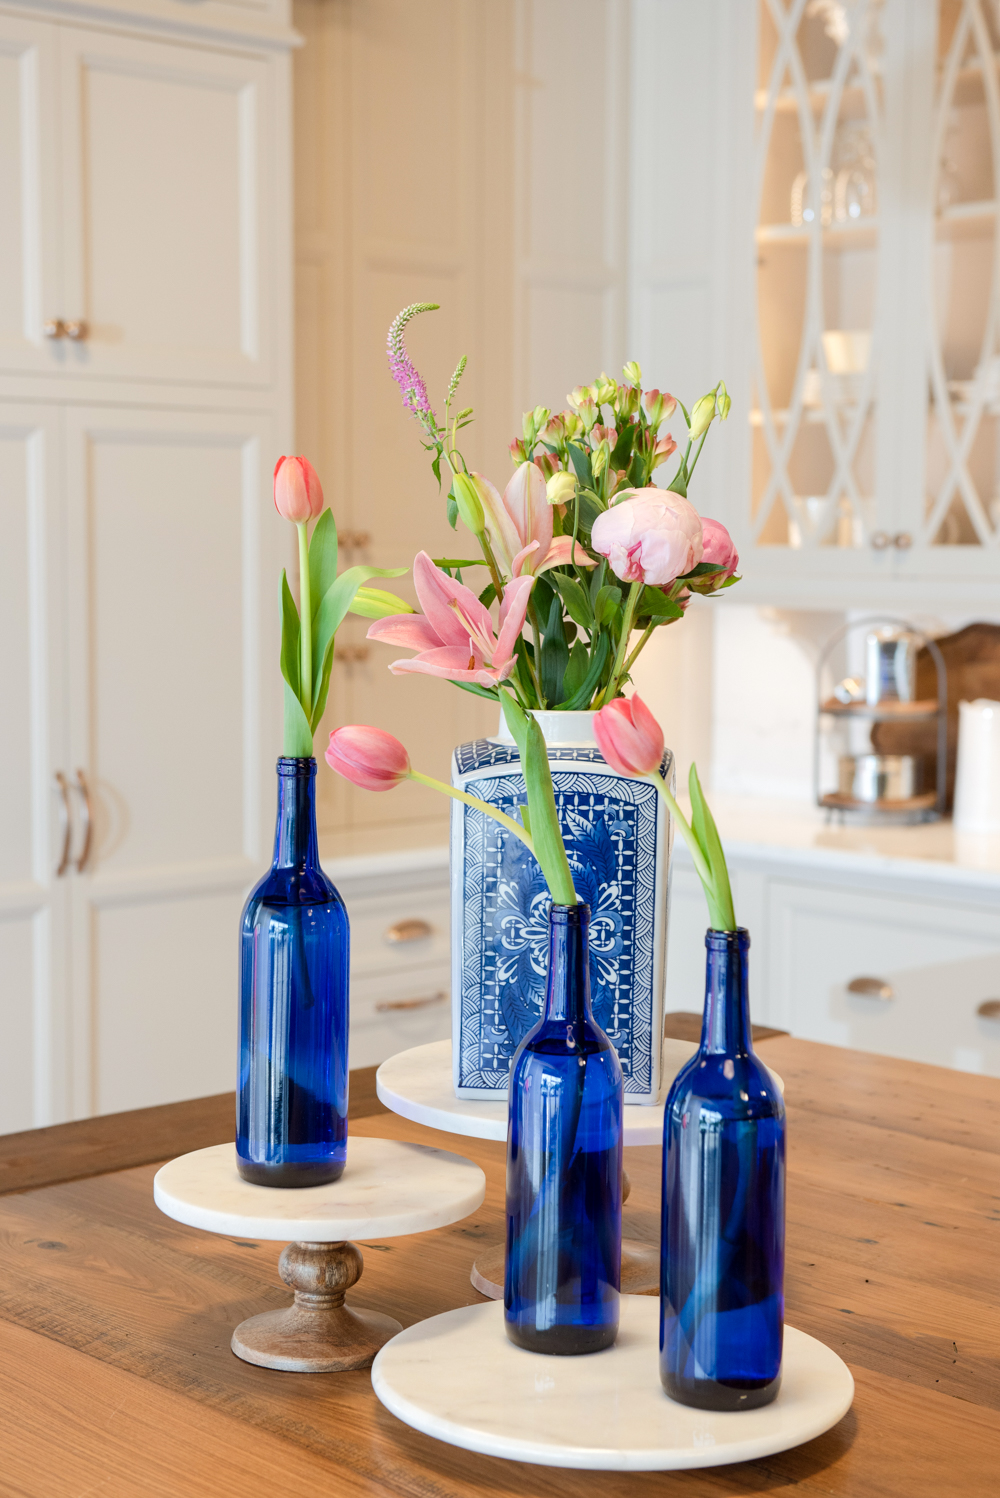 Single stems in blue bottles are just as a stunning as the giant centerpieces and way more time efficient if putting together a party last minute. We used groupings of smaller arrangements to decorate the surfaces around the dining area.